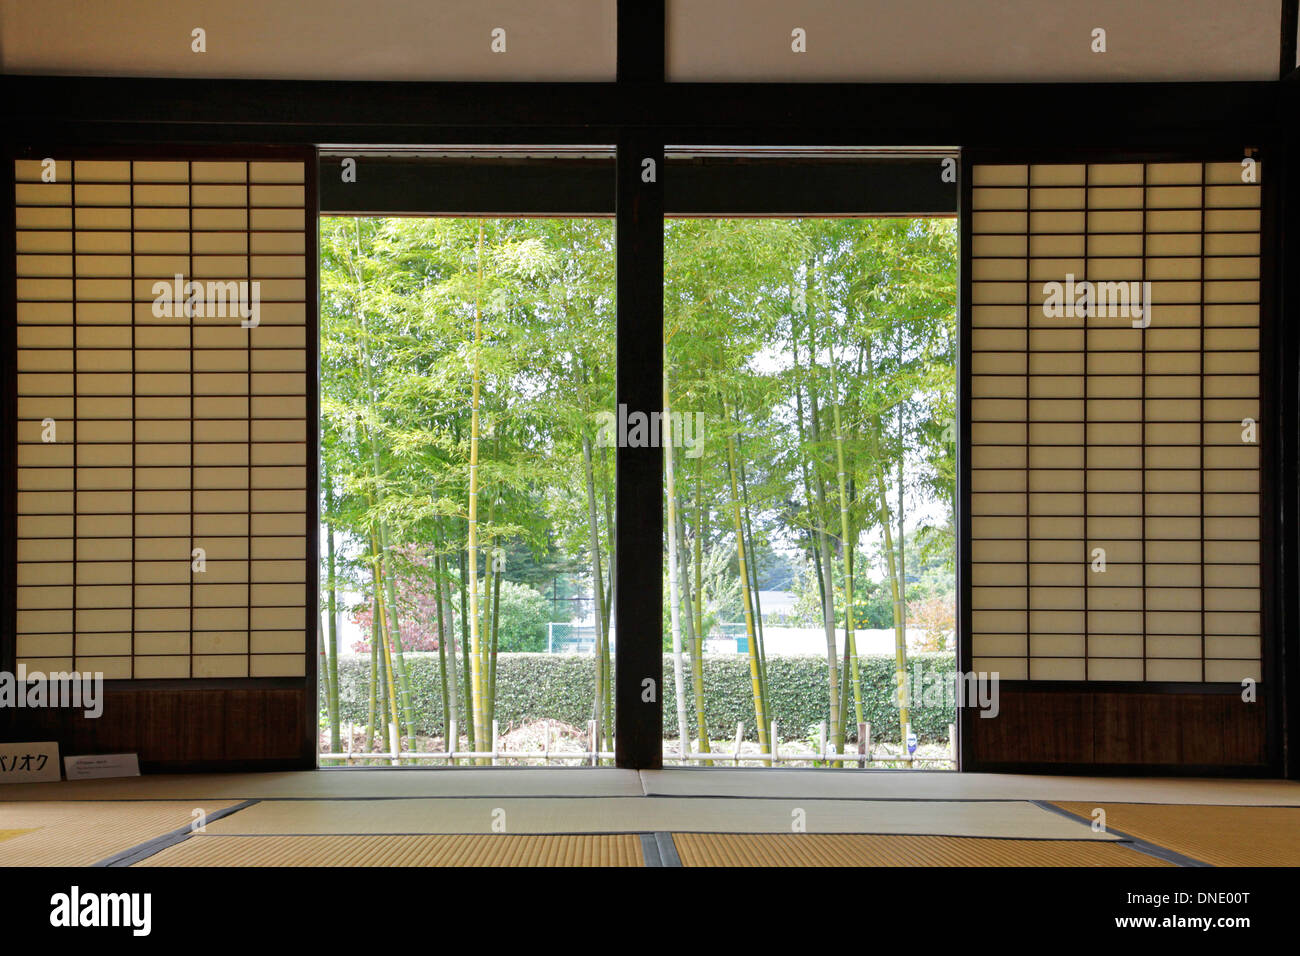 Old Japanese garden view room with sliding shoji doors Tokyo Japan & Old Japanese garden view room with sliding shoji doors Tokyo Japan ...